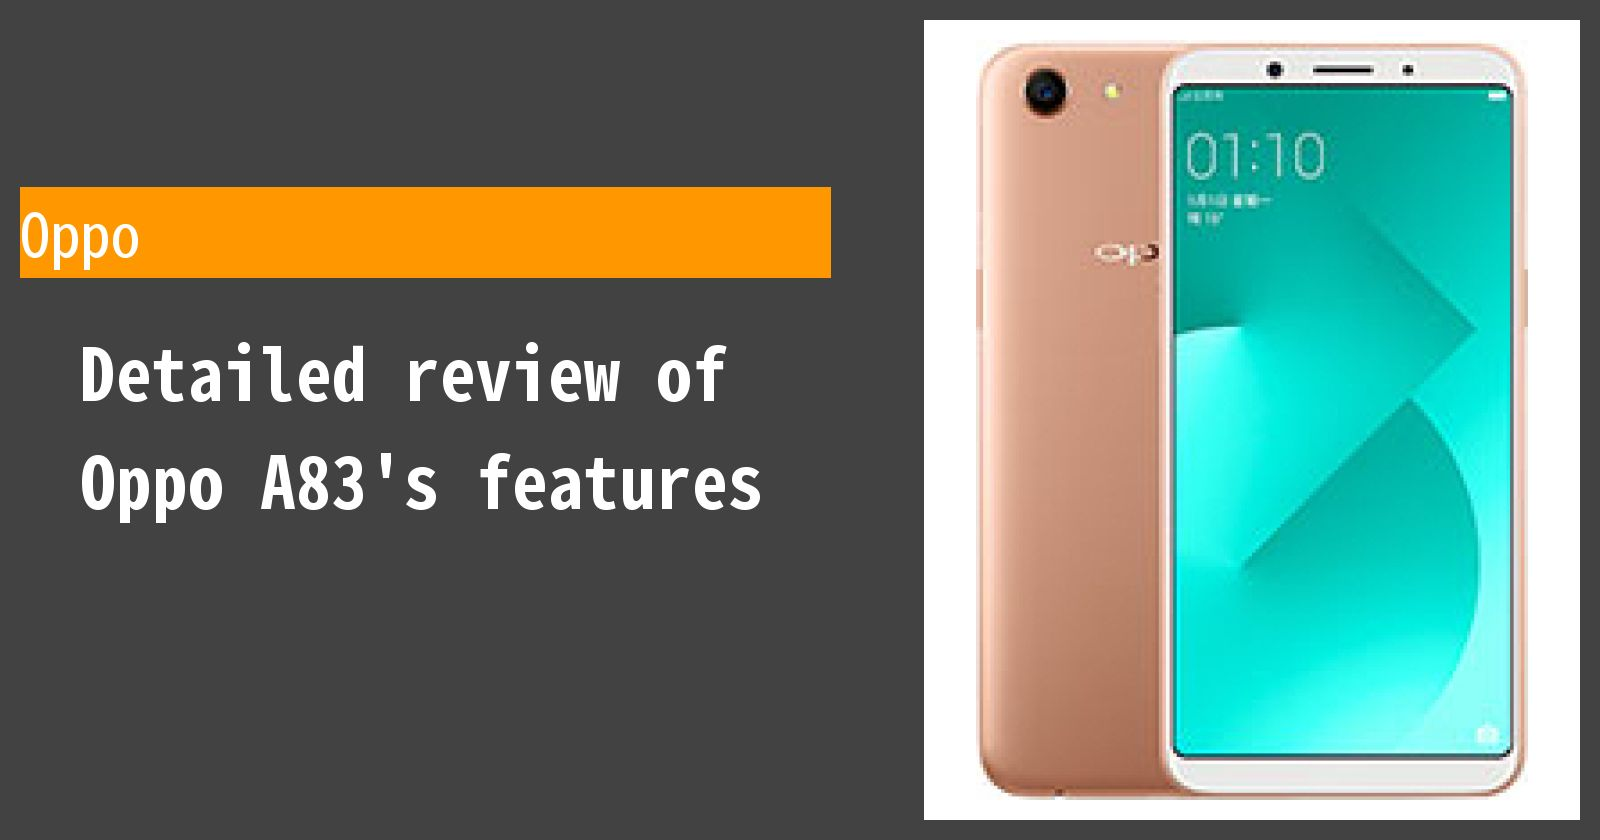 Detailed review of Oppo A83's features